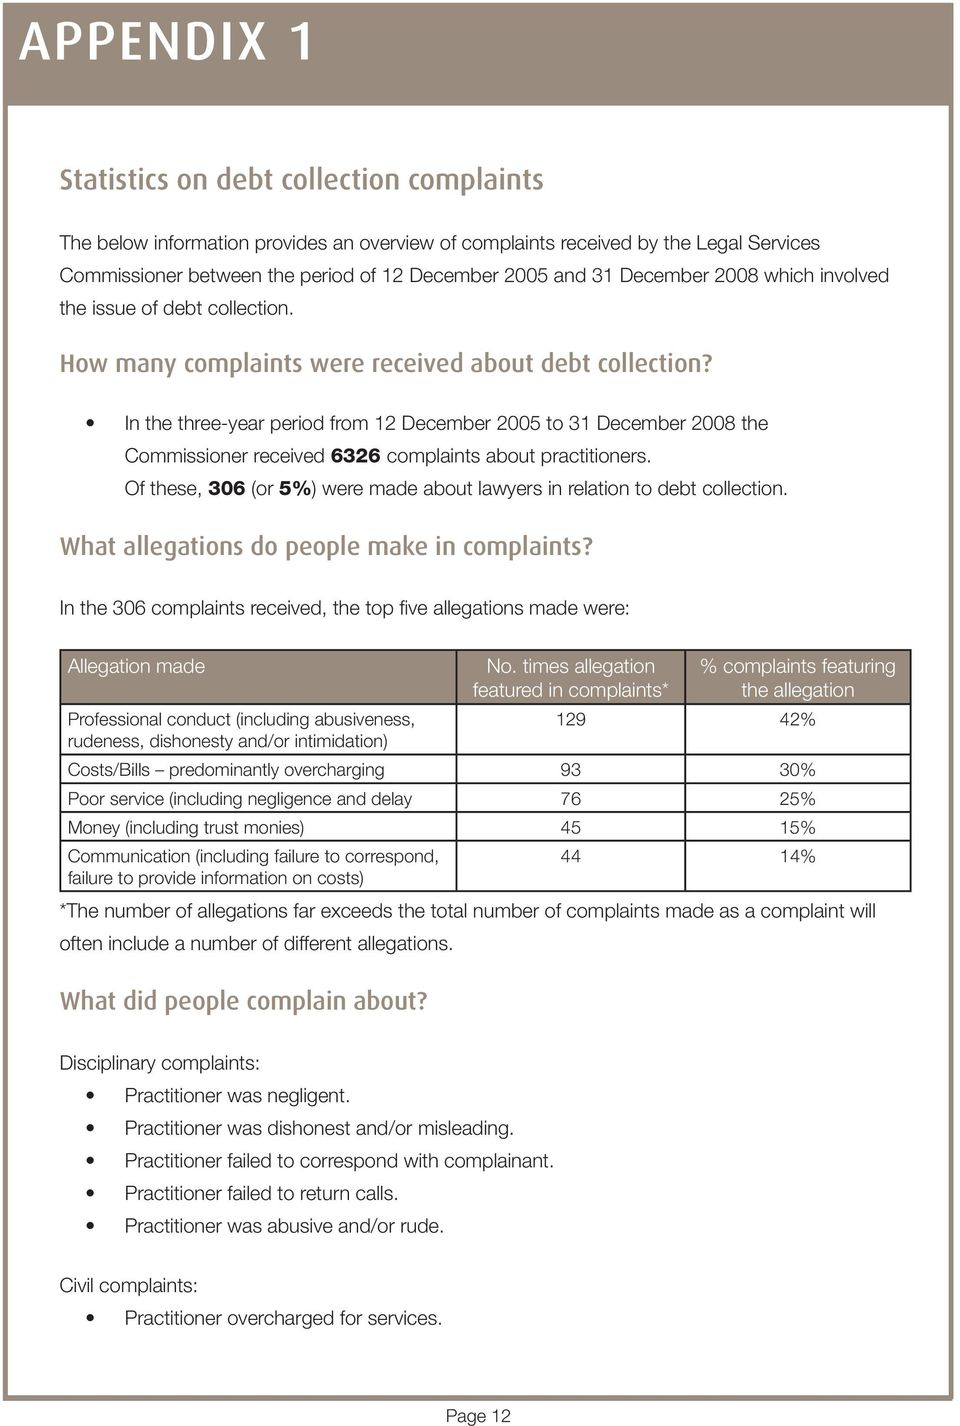 In the three-year period from 12 December 2005 to 31 December 2008 the Commissioner received 6326 complaints about practitioners.